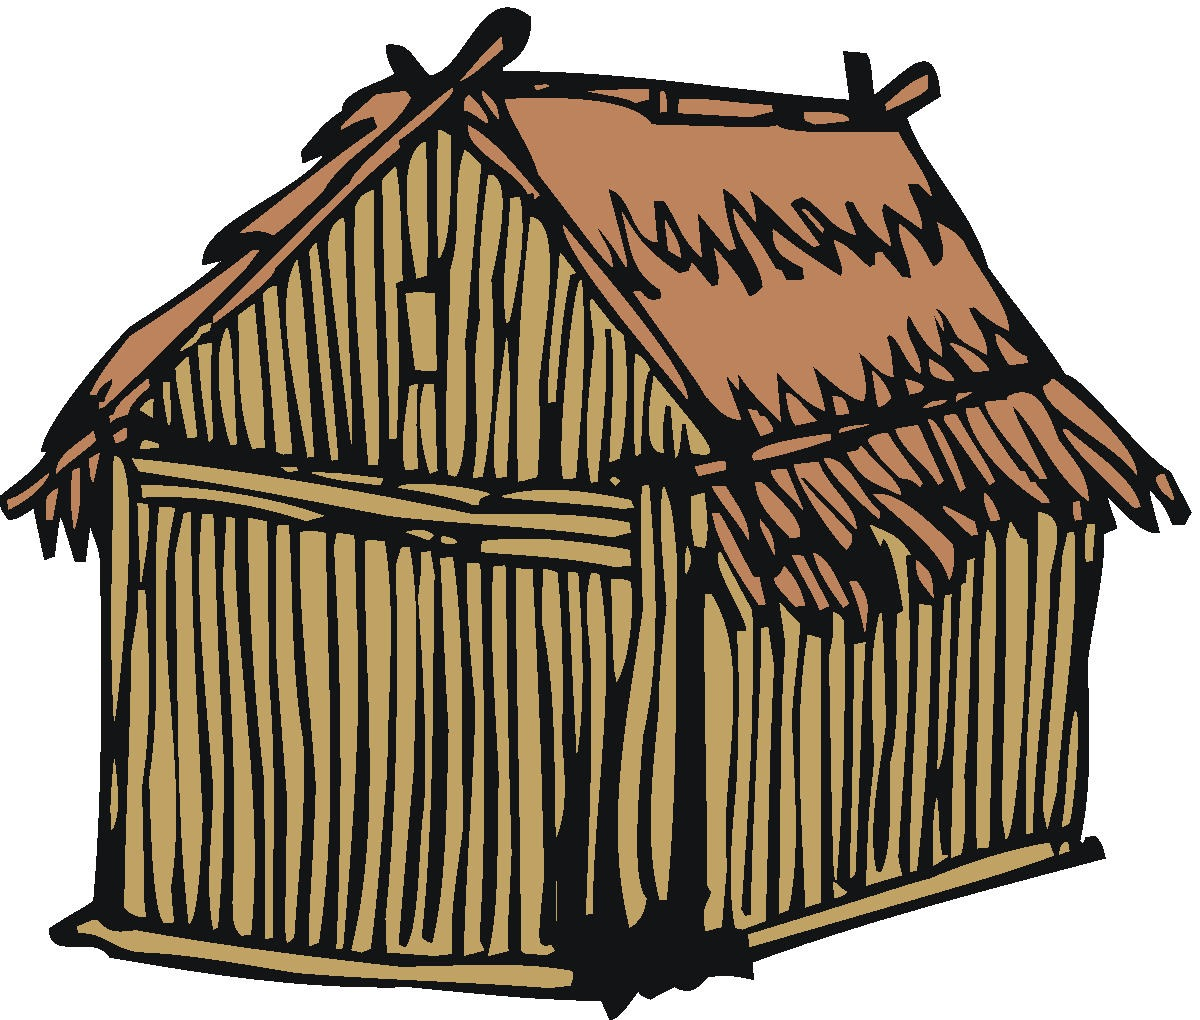 Hut clipart #1, Download drawings